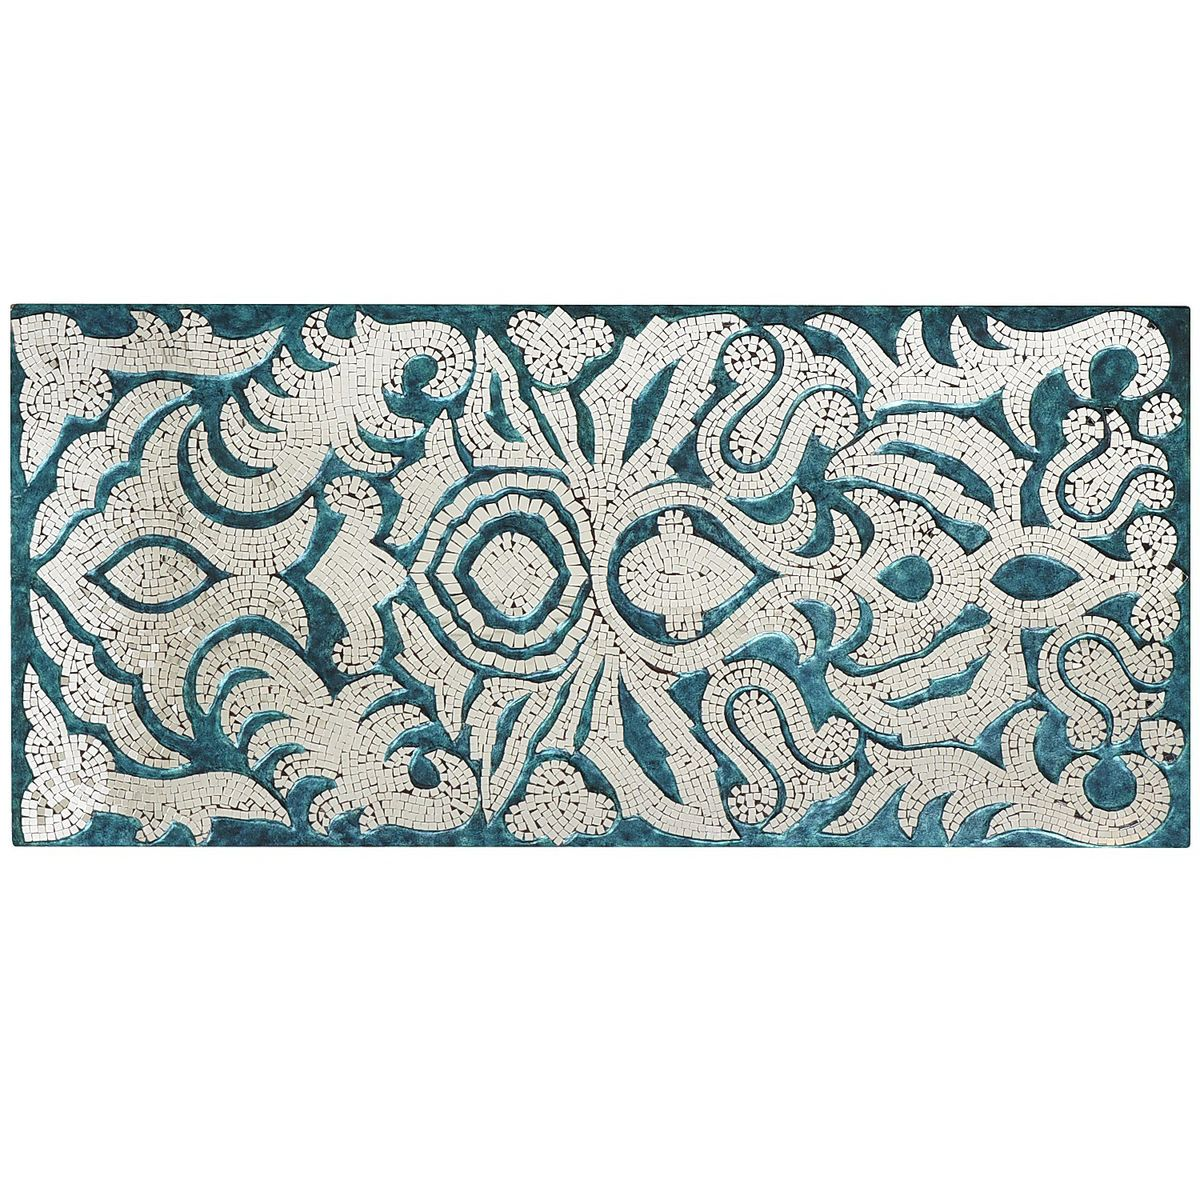 Teal Mirrored Mosaic Damask Panel | Pier 1 Imports ...